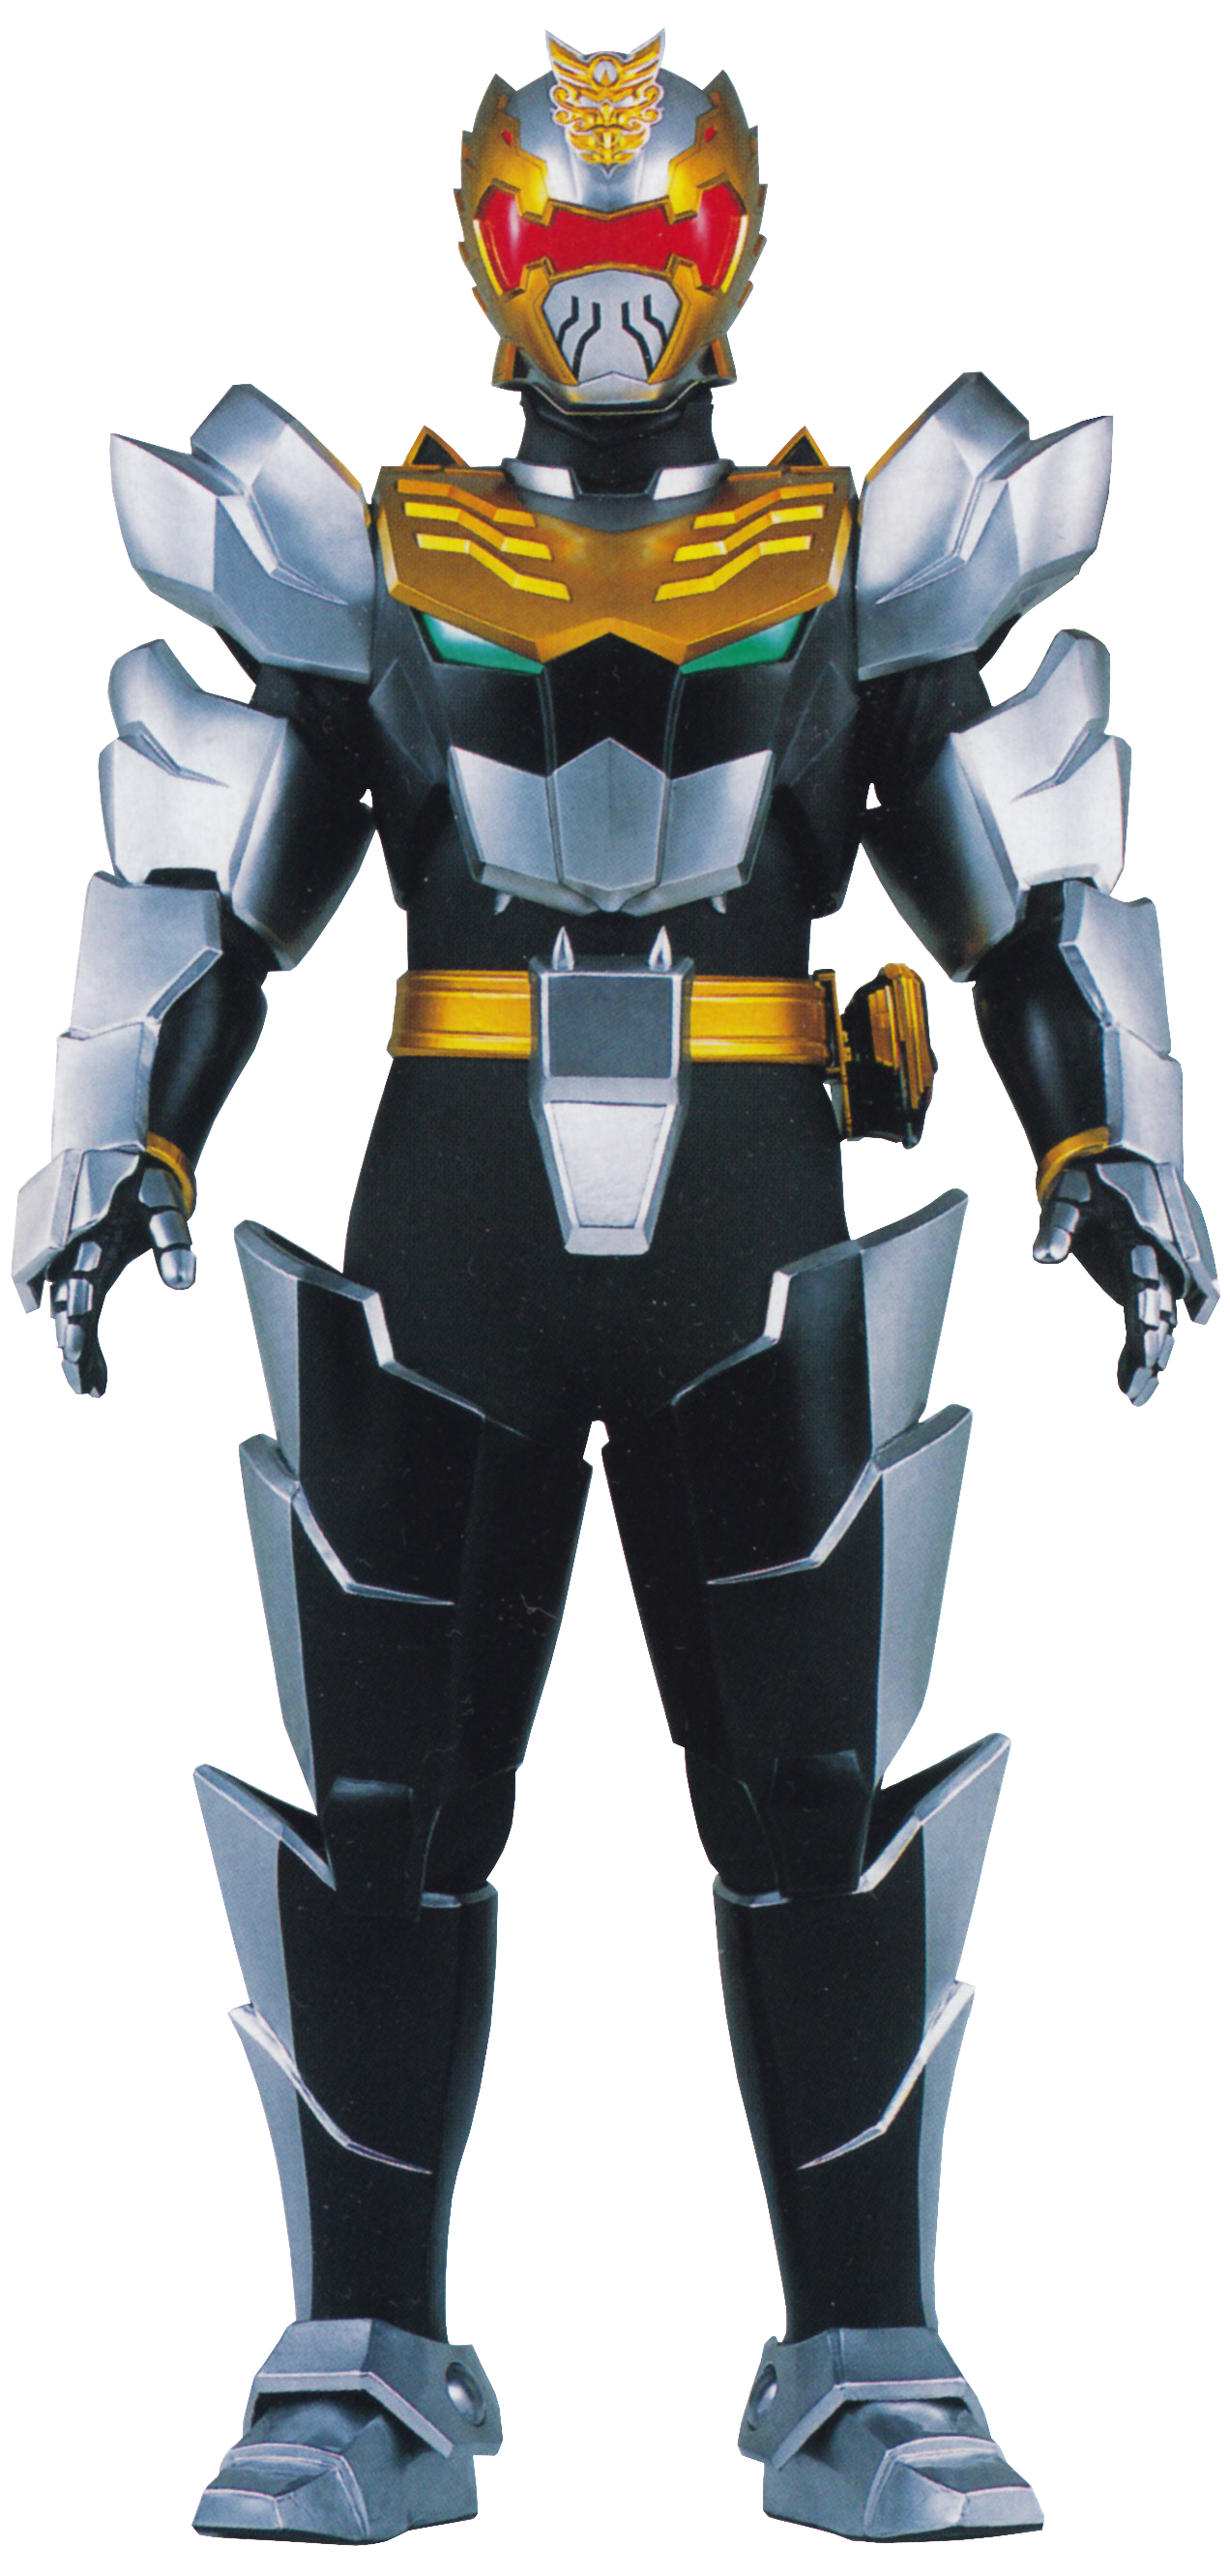 I searched for Power Rangers Megaforce Robo Knight images on Bing ...